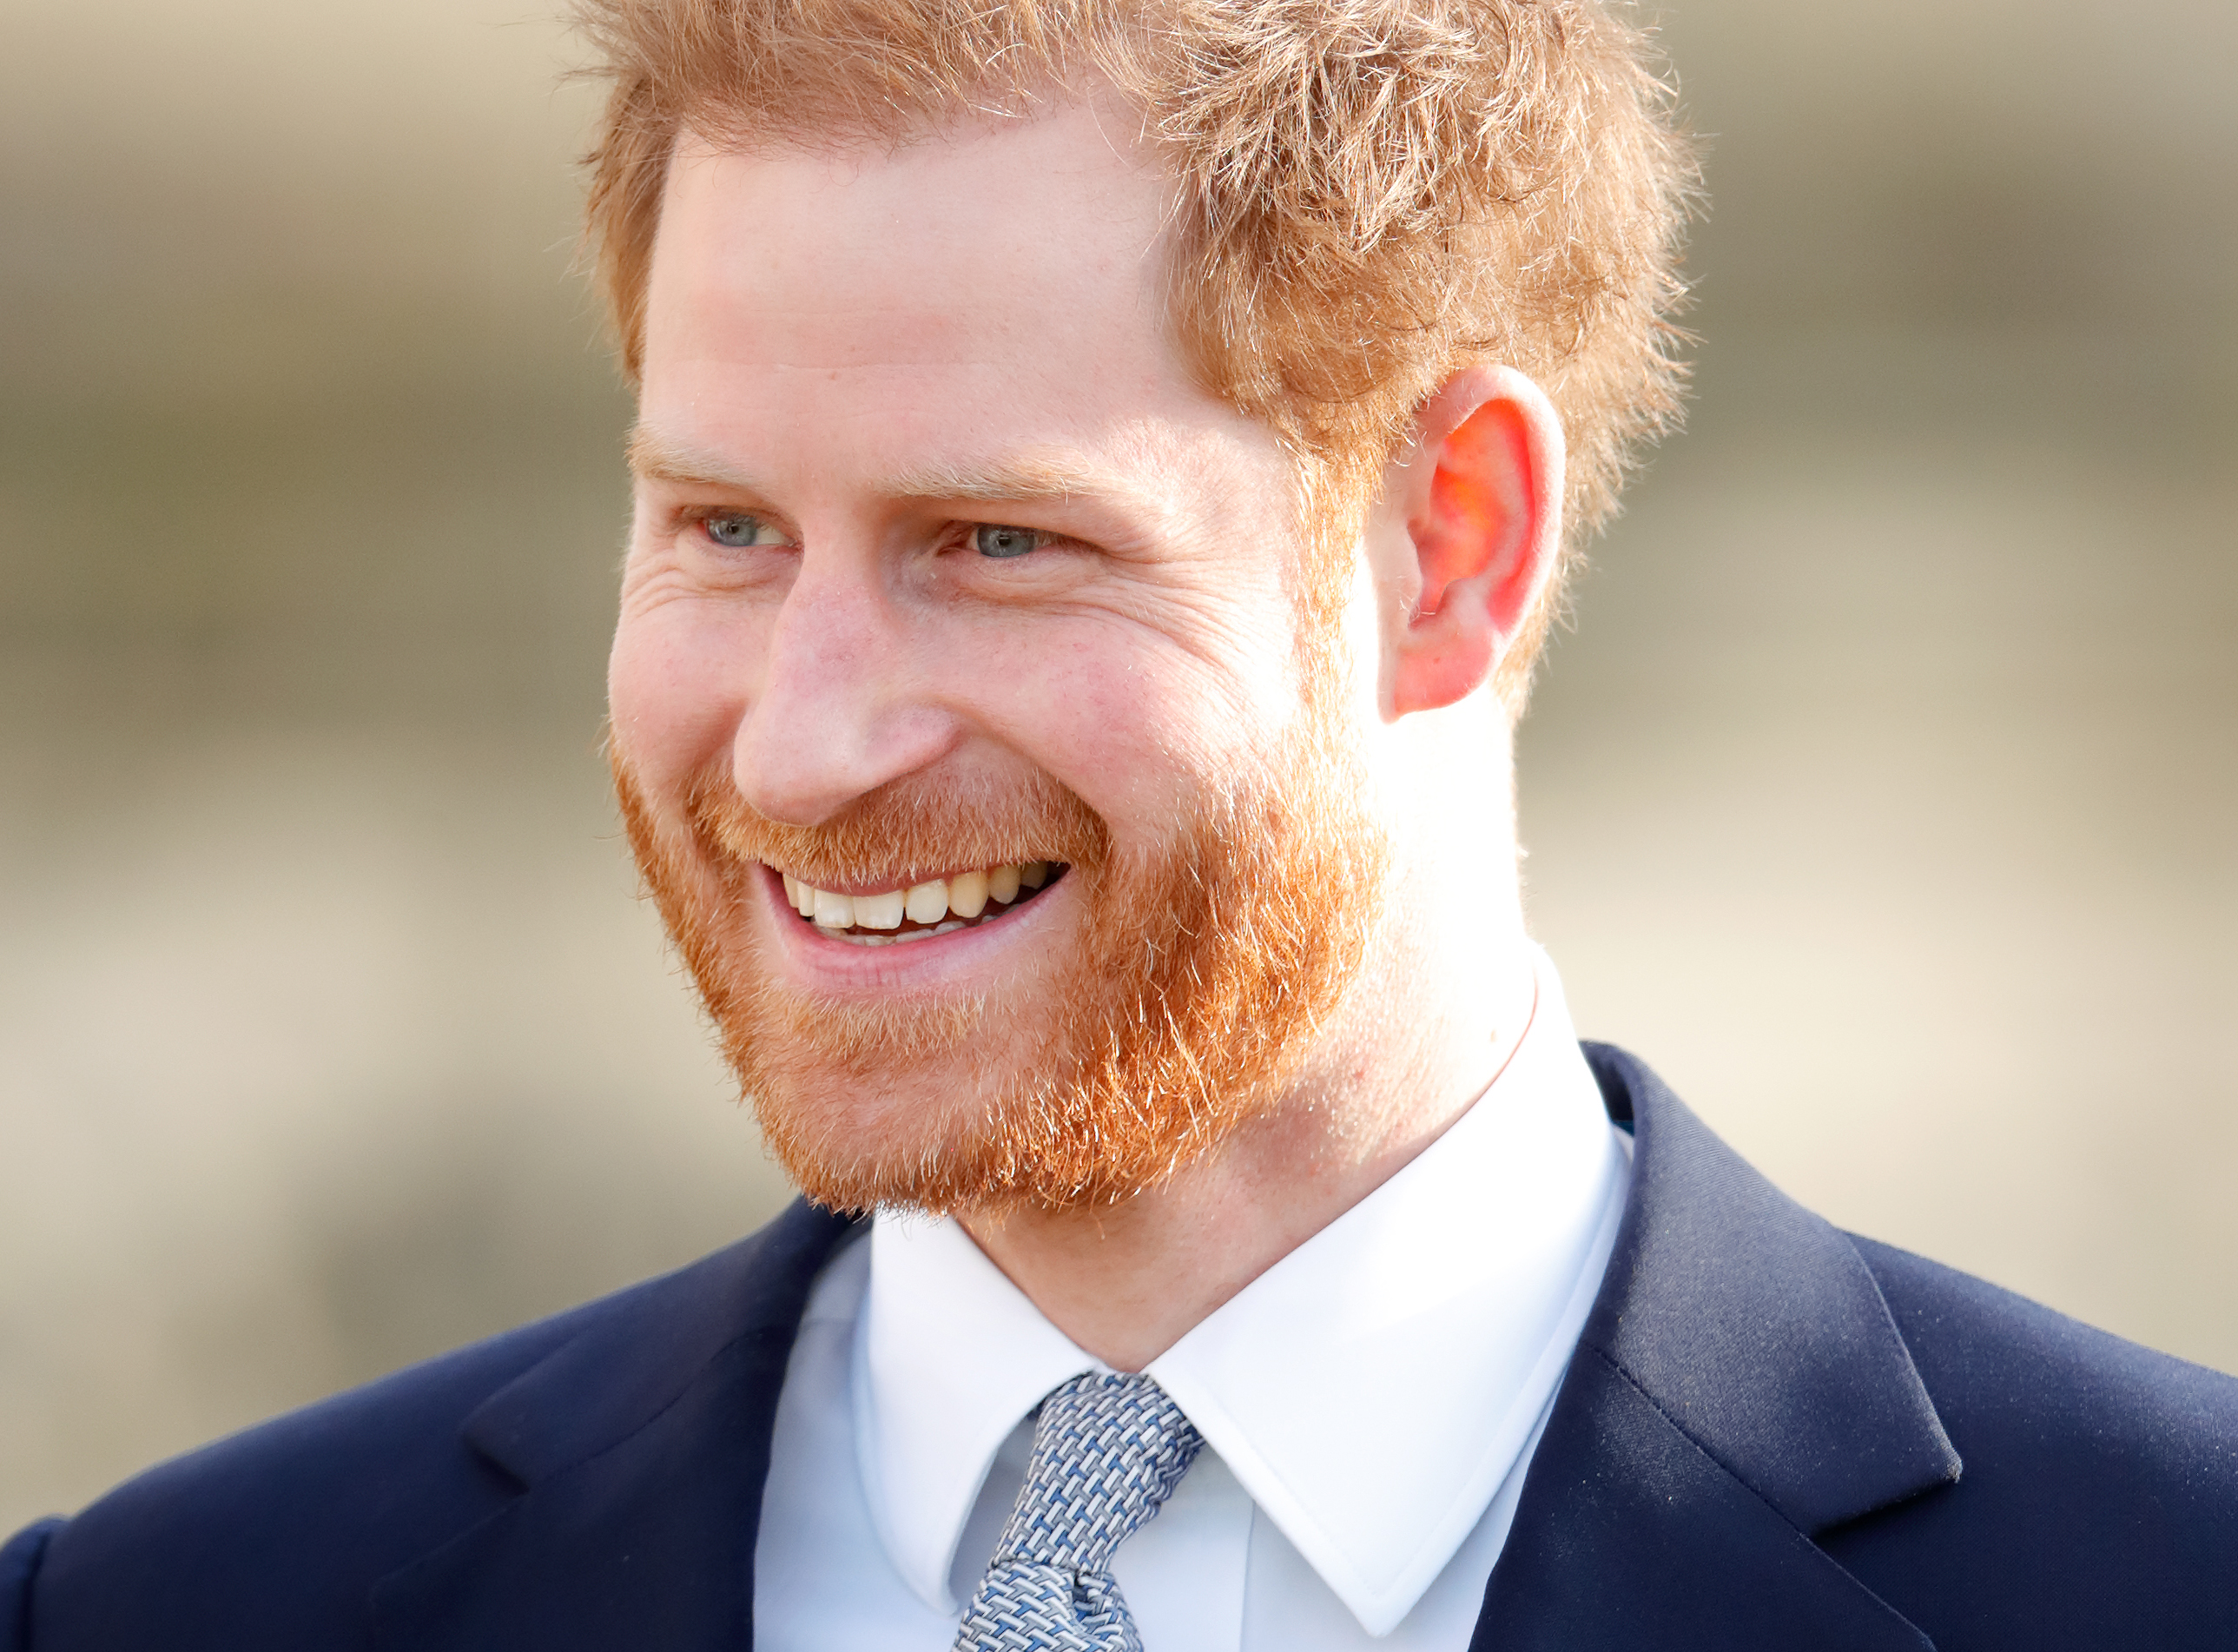 Prince Harry Confesses His Heartfelt Wish for Archie as He Grows Up - Woman's World